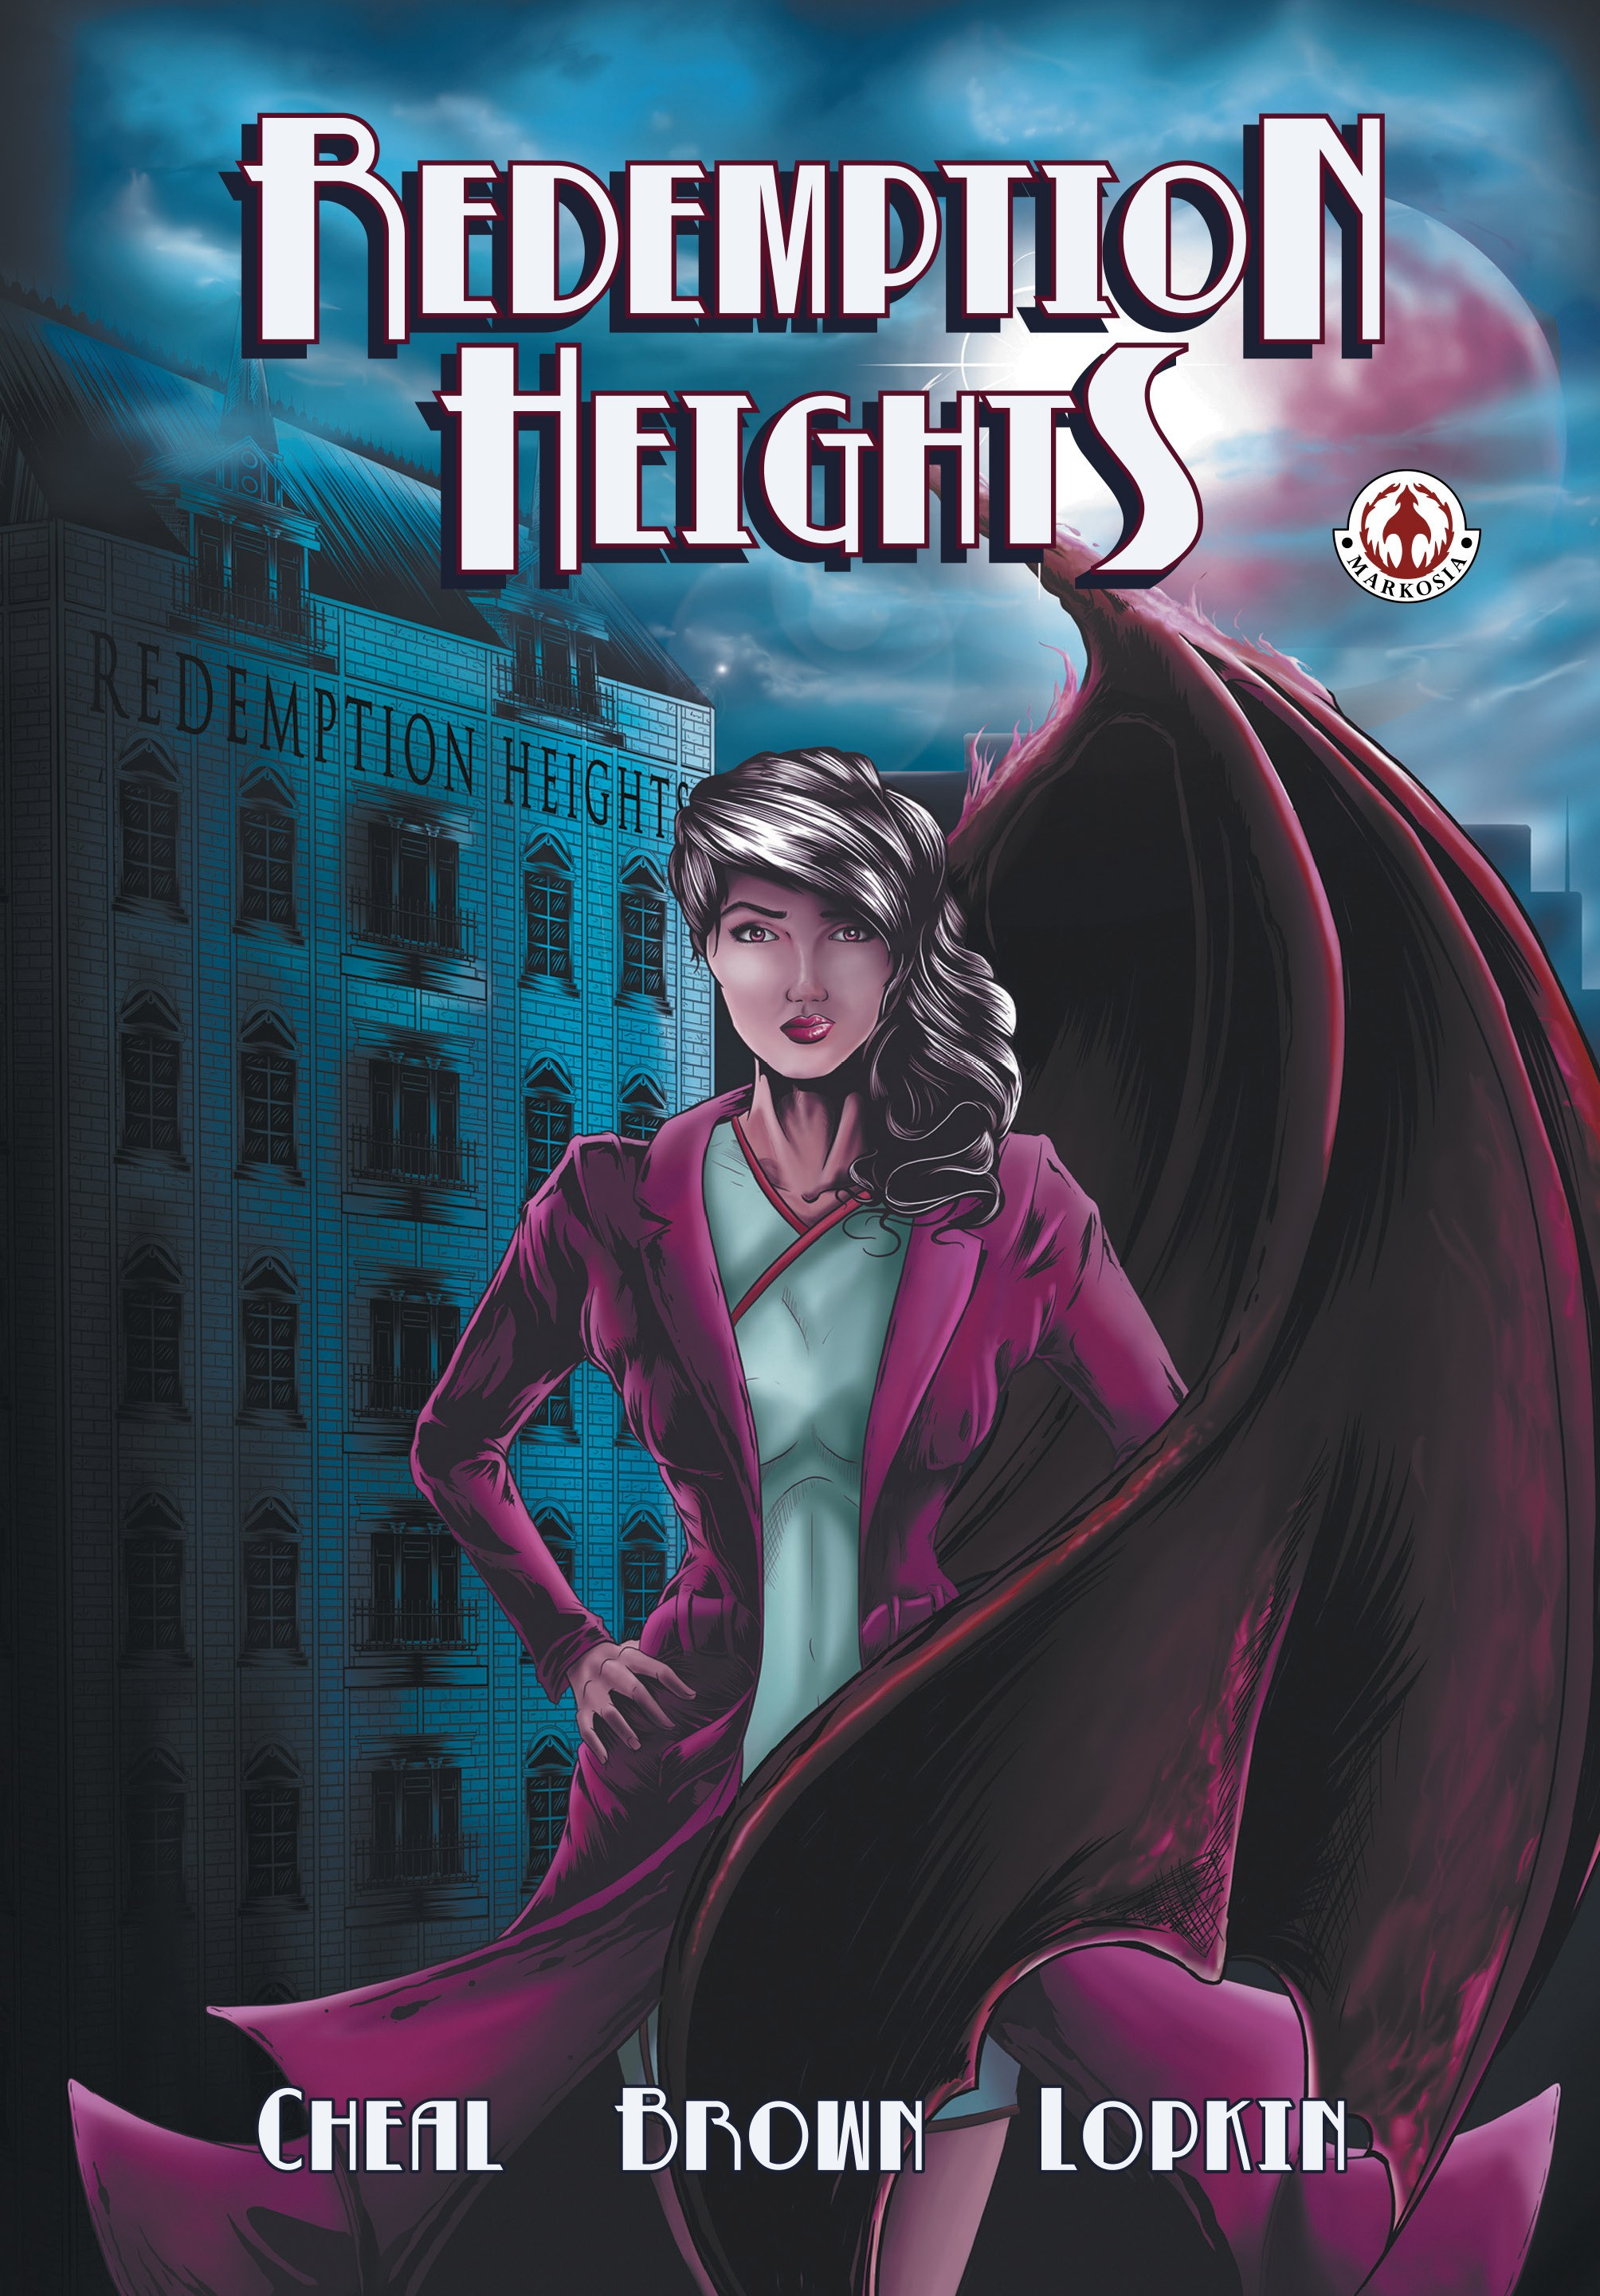 Read online Redemption Heights comic -  Issue # Full - 1